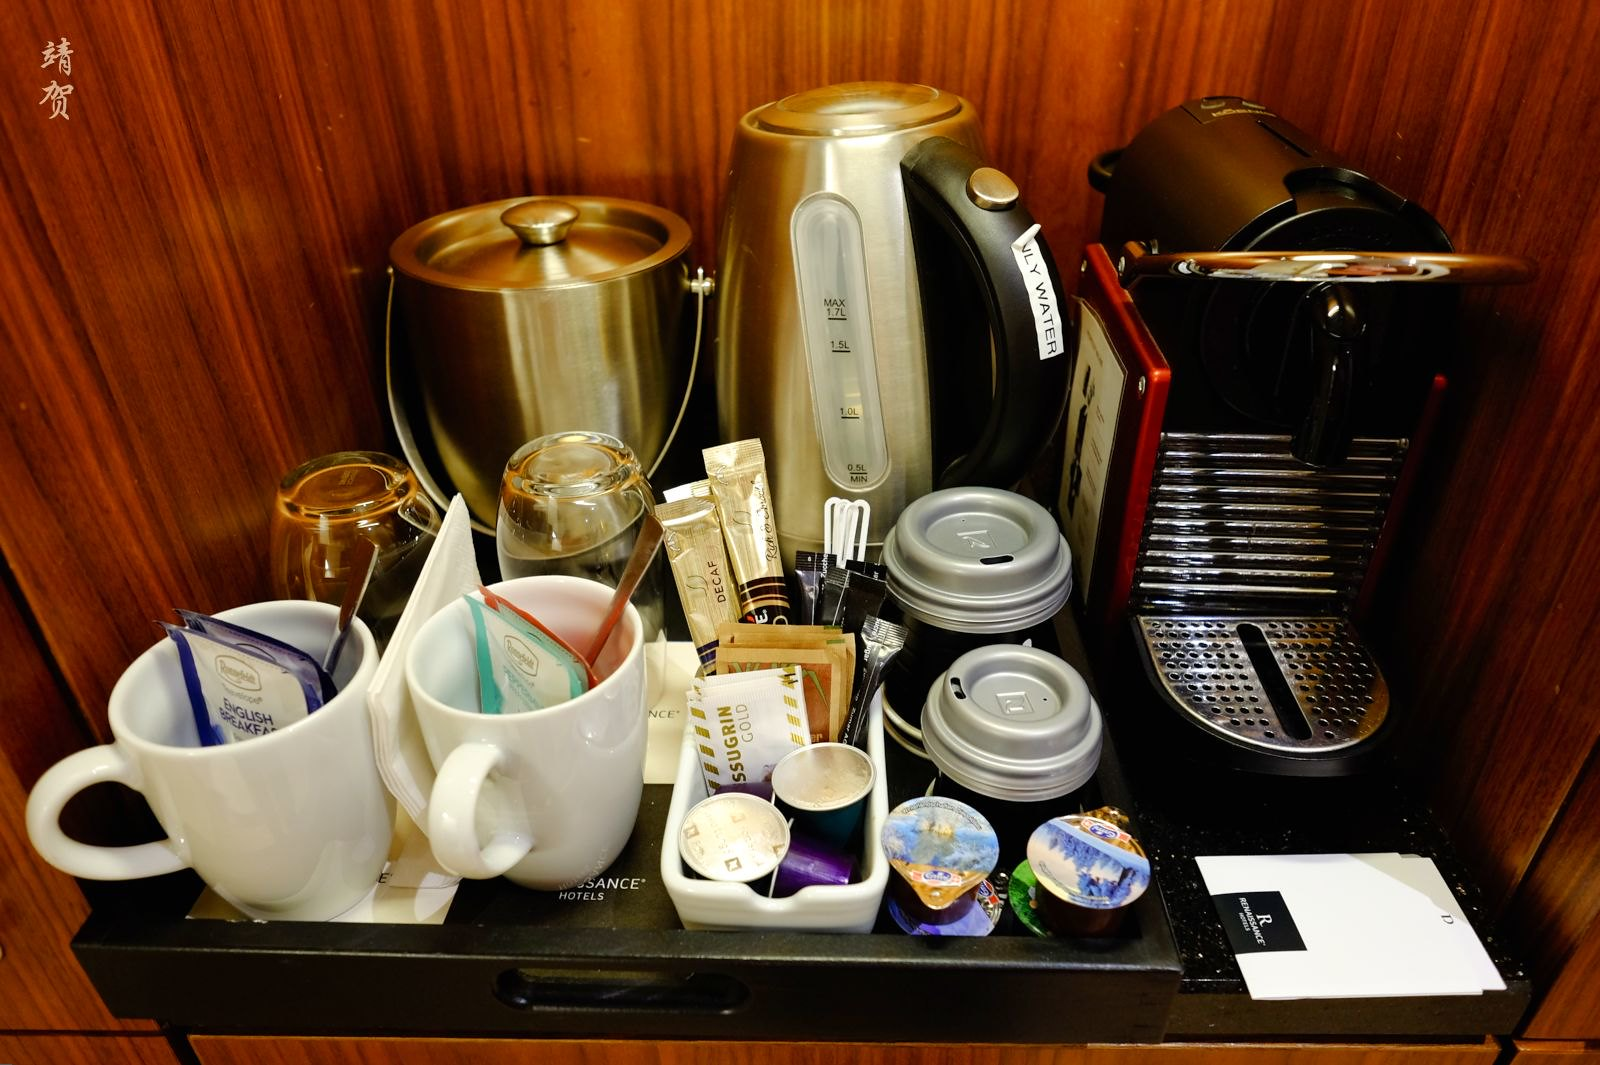 Nespresso in the minibar